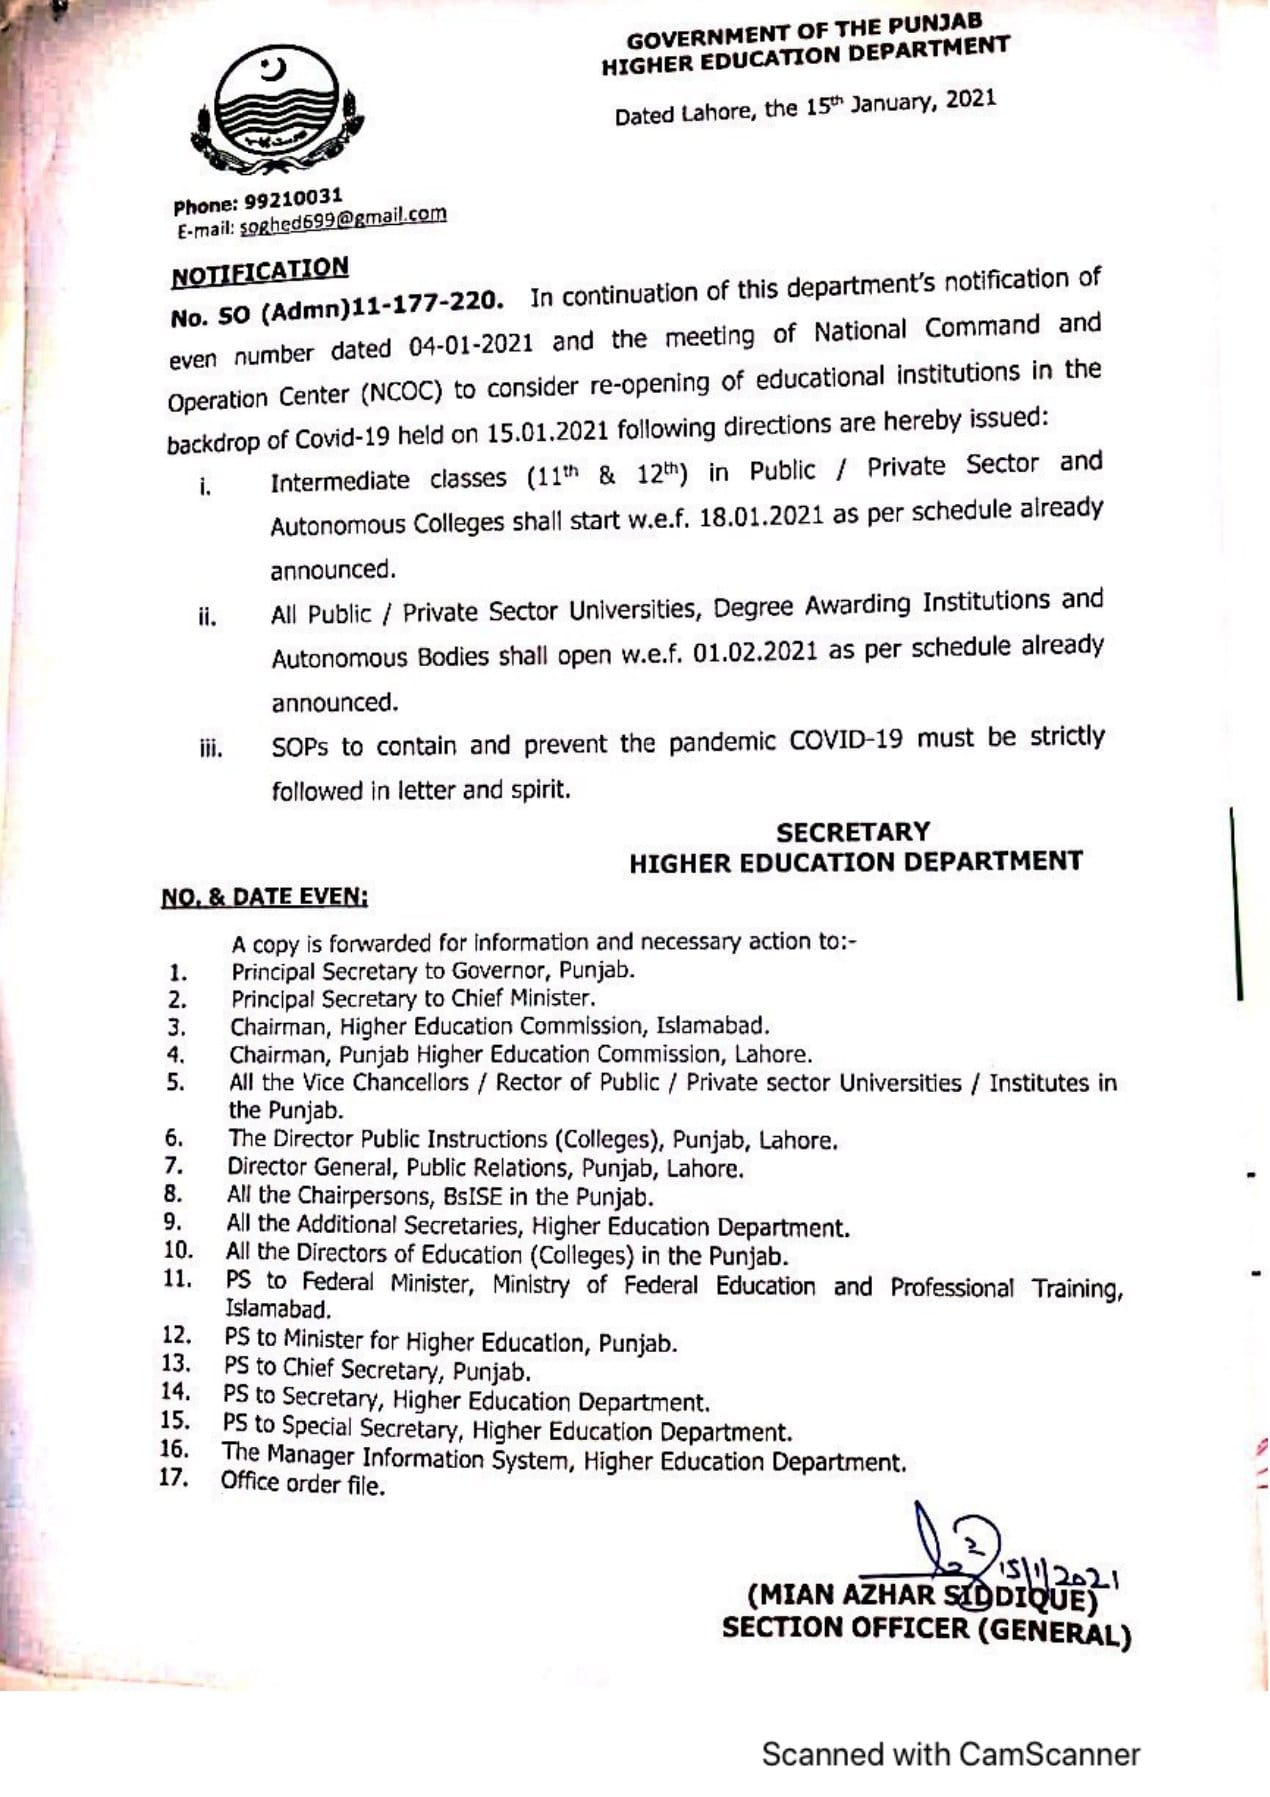 Schedule of Re-Opening Public Private Sector Educational Institutions